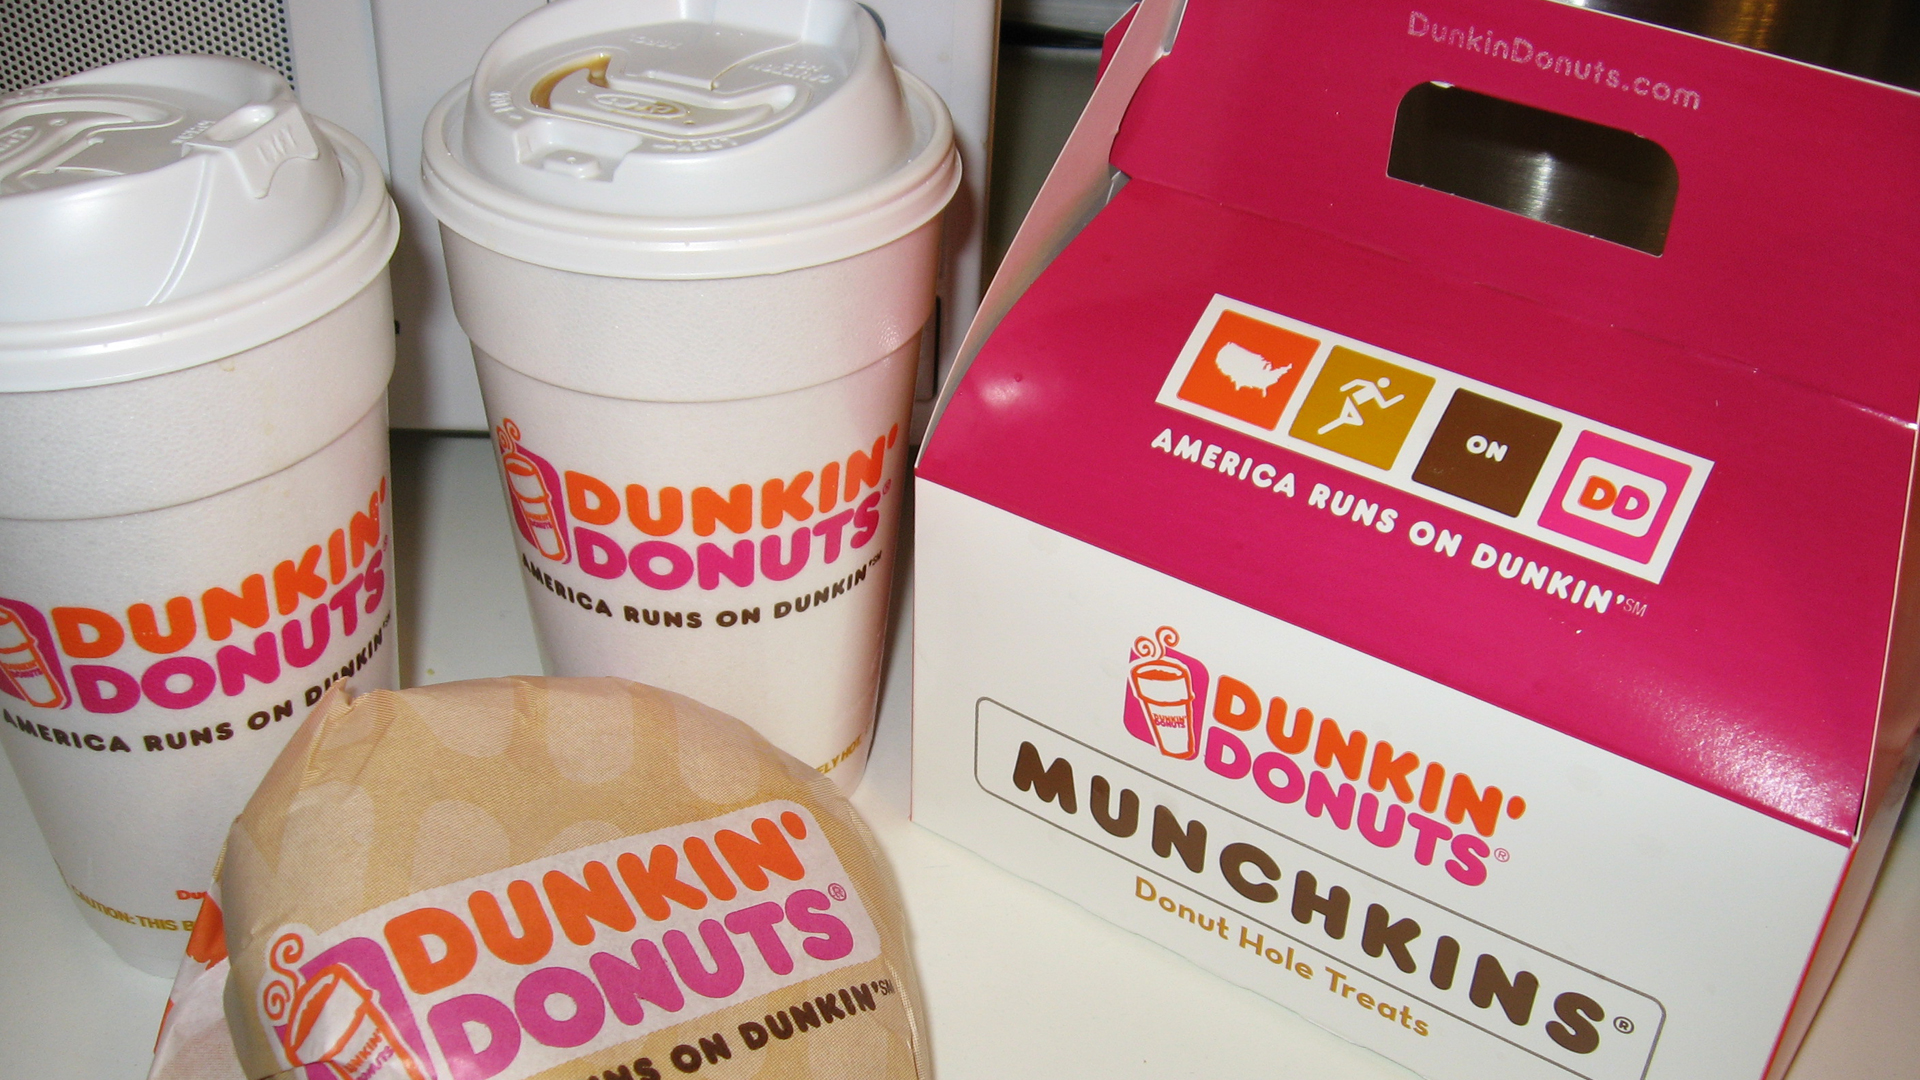 File photo of Dunkin' Donuts. (Credit: Qfamily/flickr via Creative Commons)